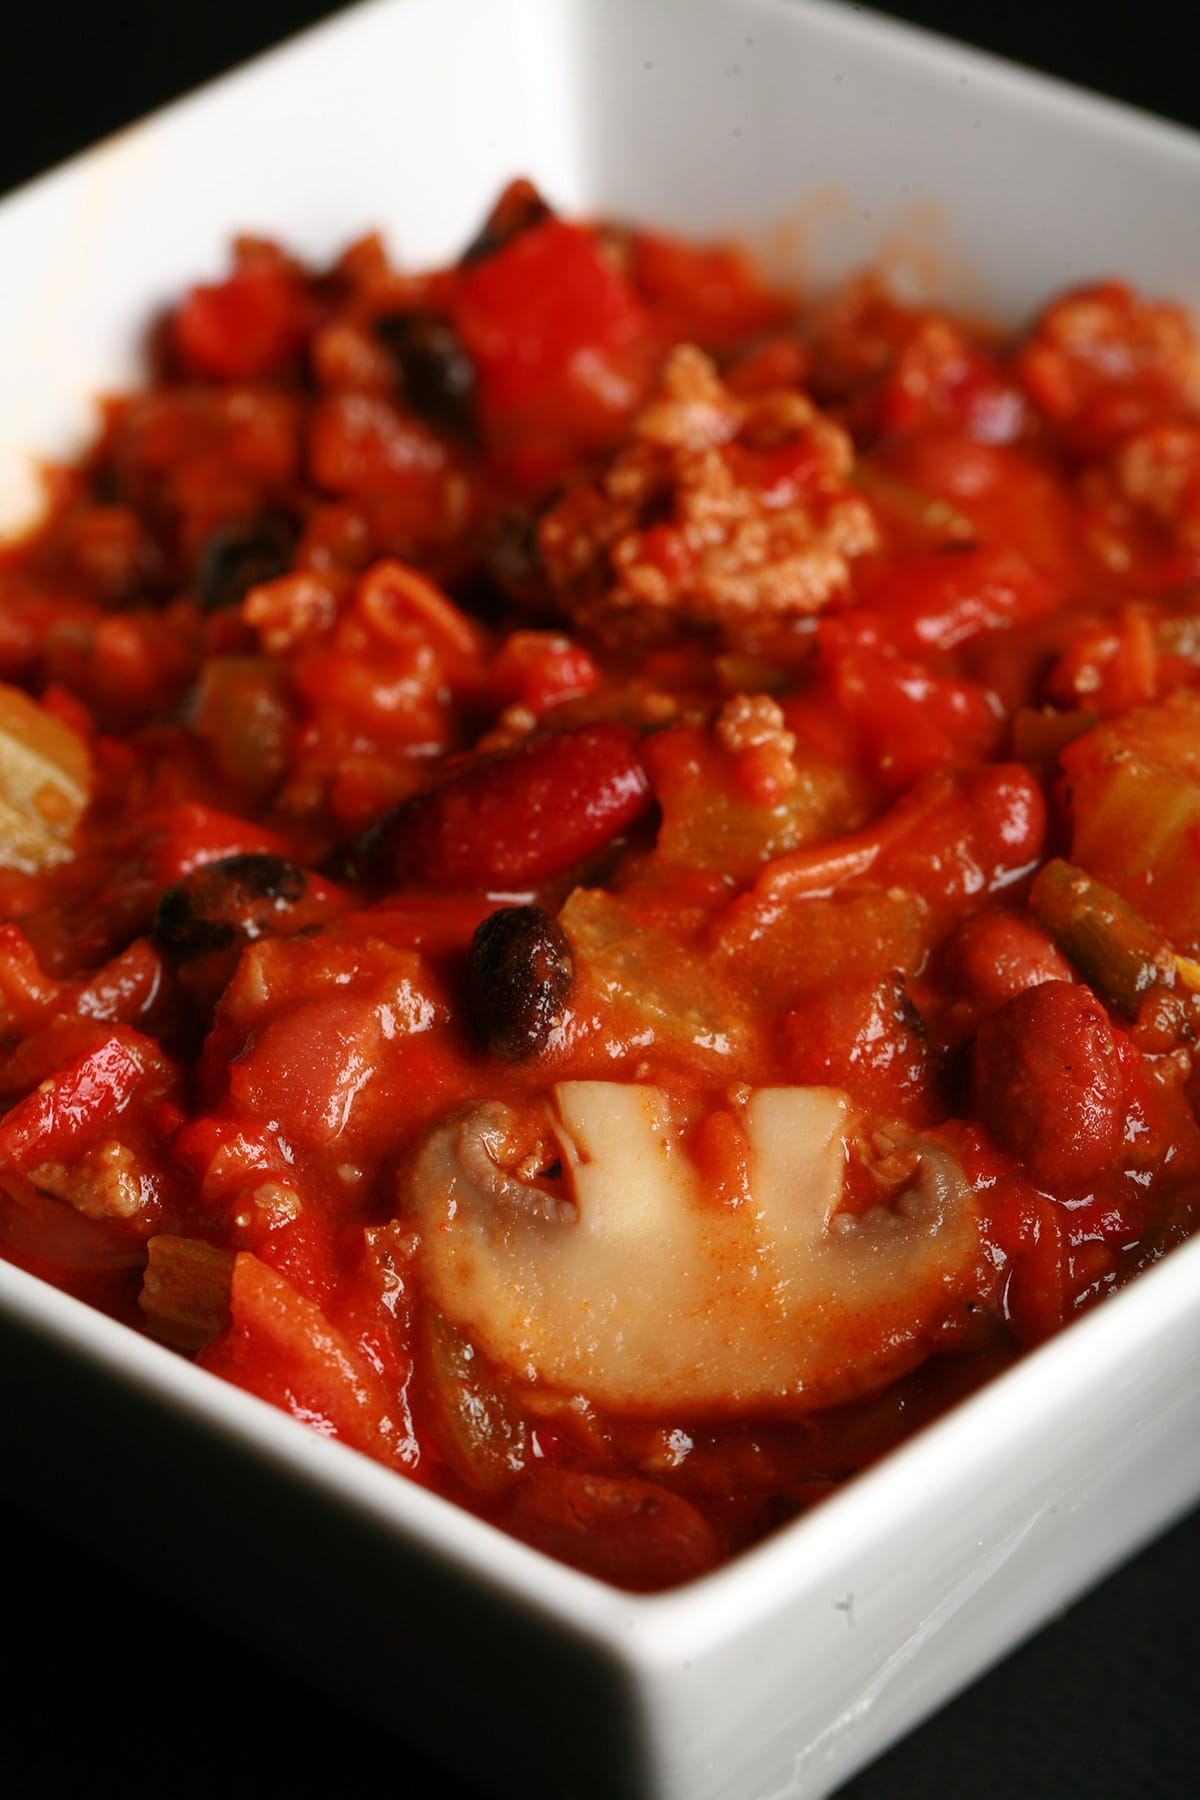 Close up photo of a bowl of chili. Kidney beans, ground beef, mushrooms, celery, and red peppers are visible.